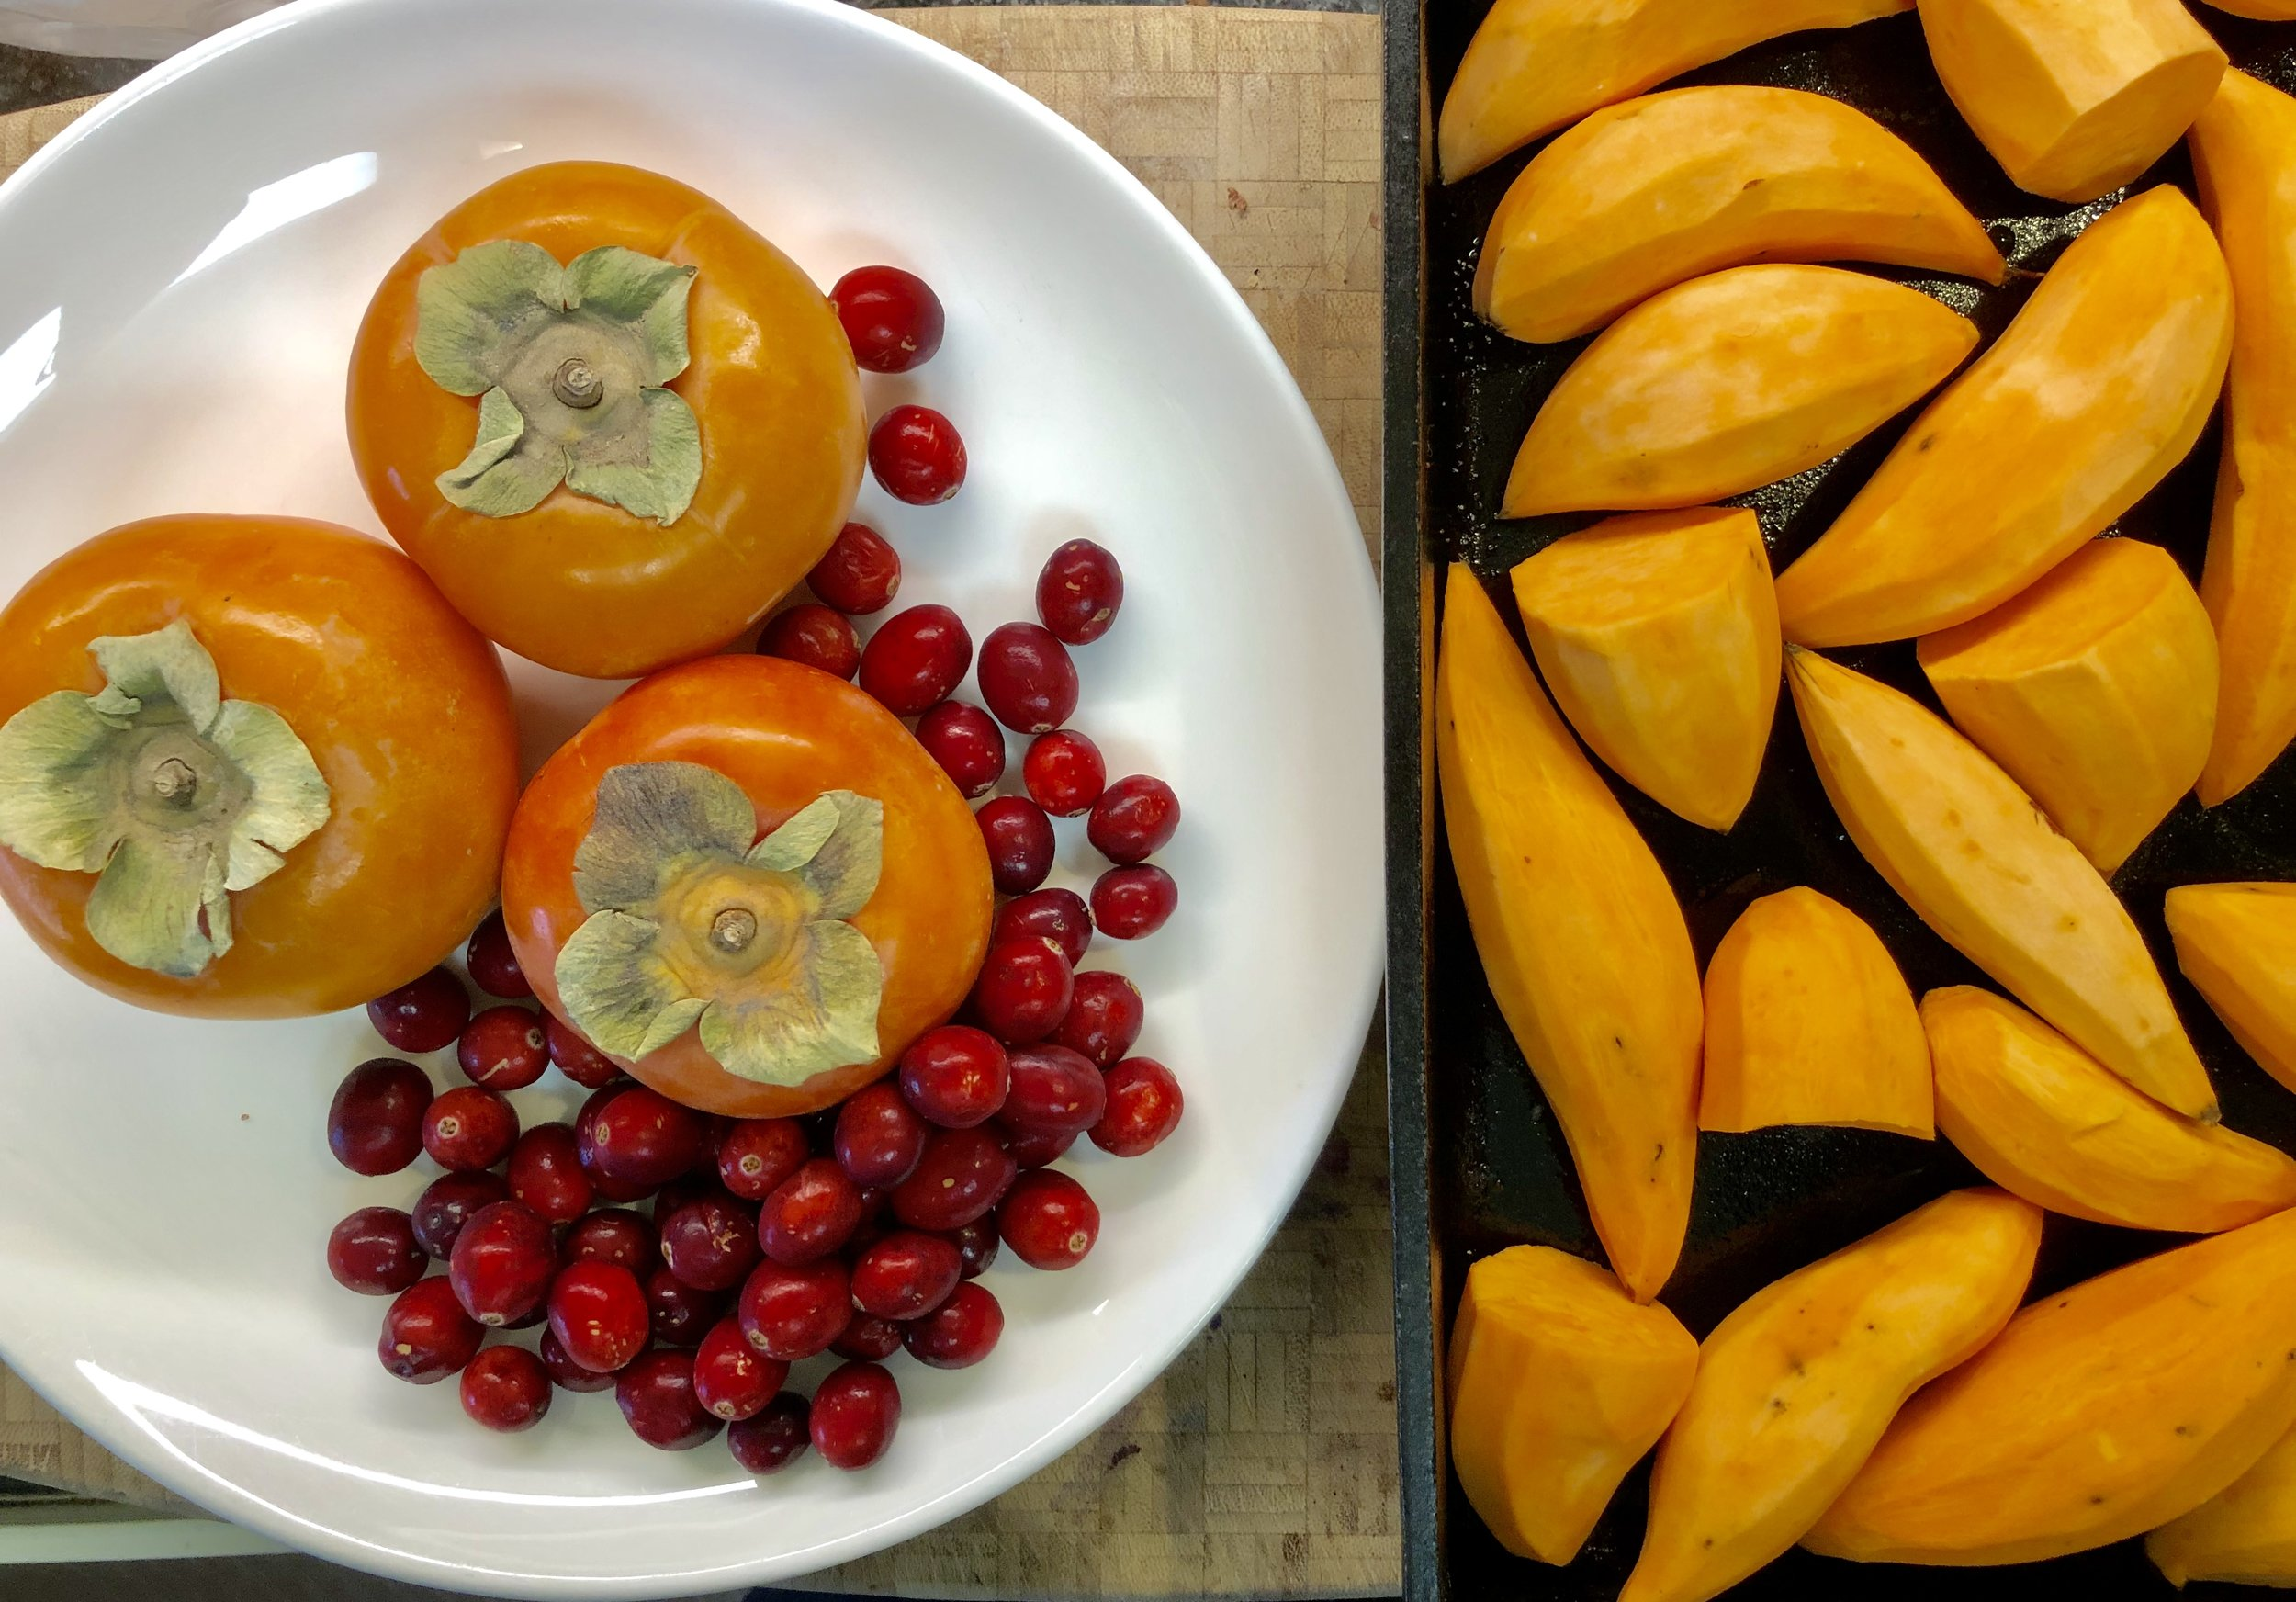 If you're luck enough to find persimmons where you are… grab 'em! Just make sure they are Fuyu Persimmons.